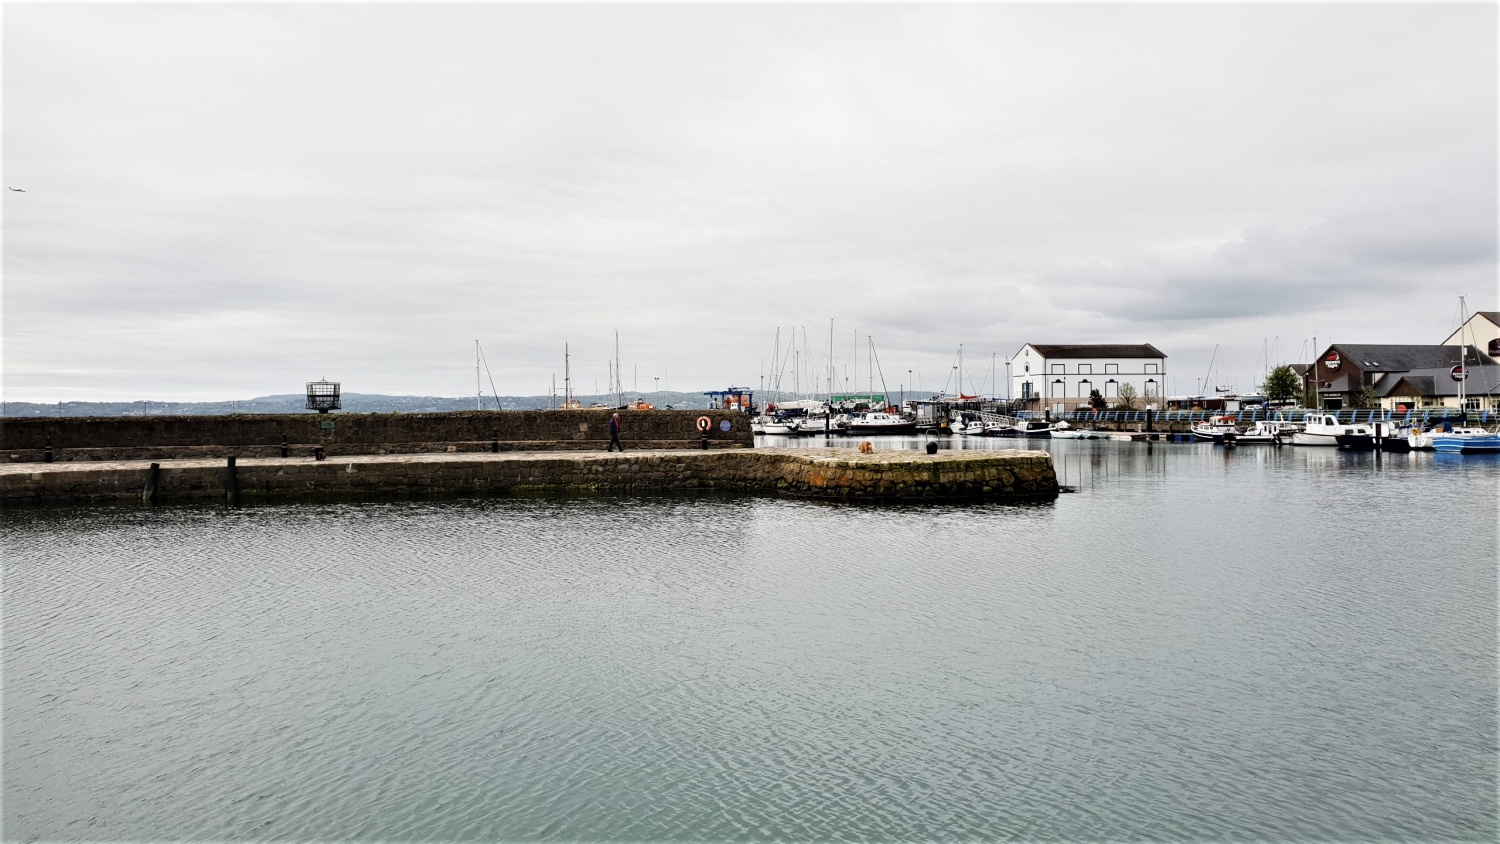 Carrickfergus panorama